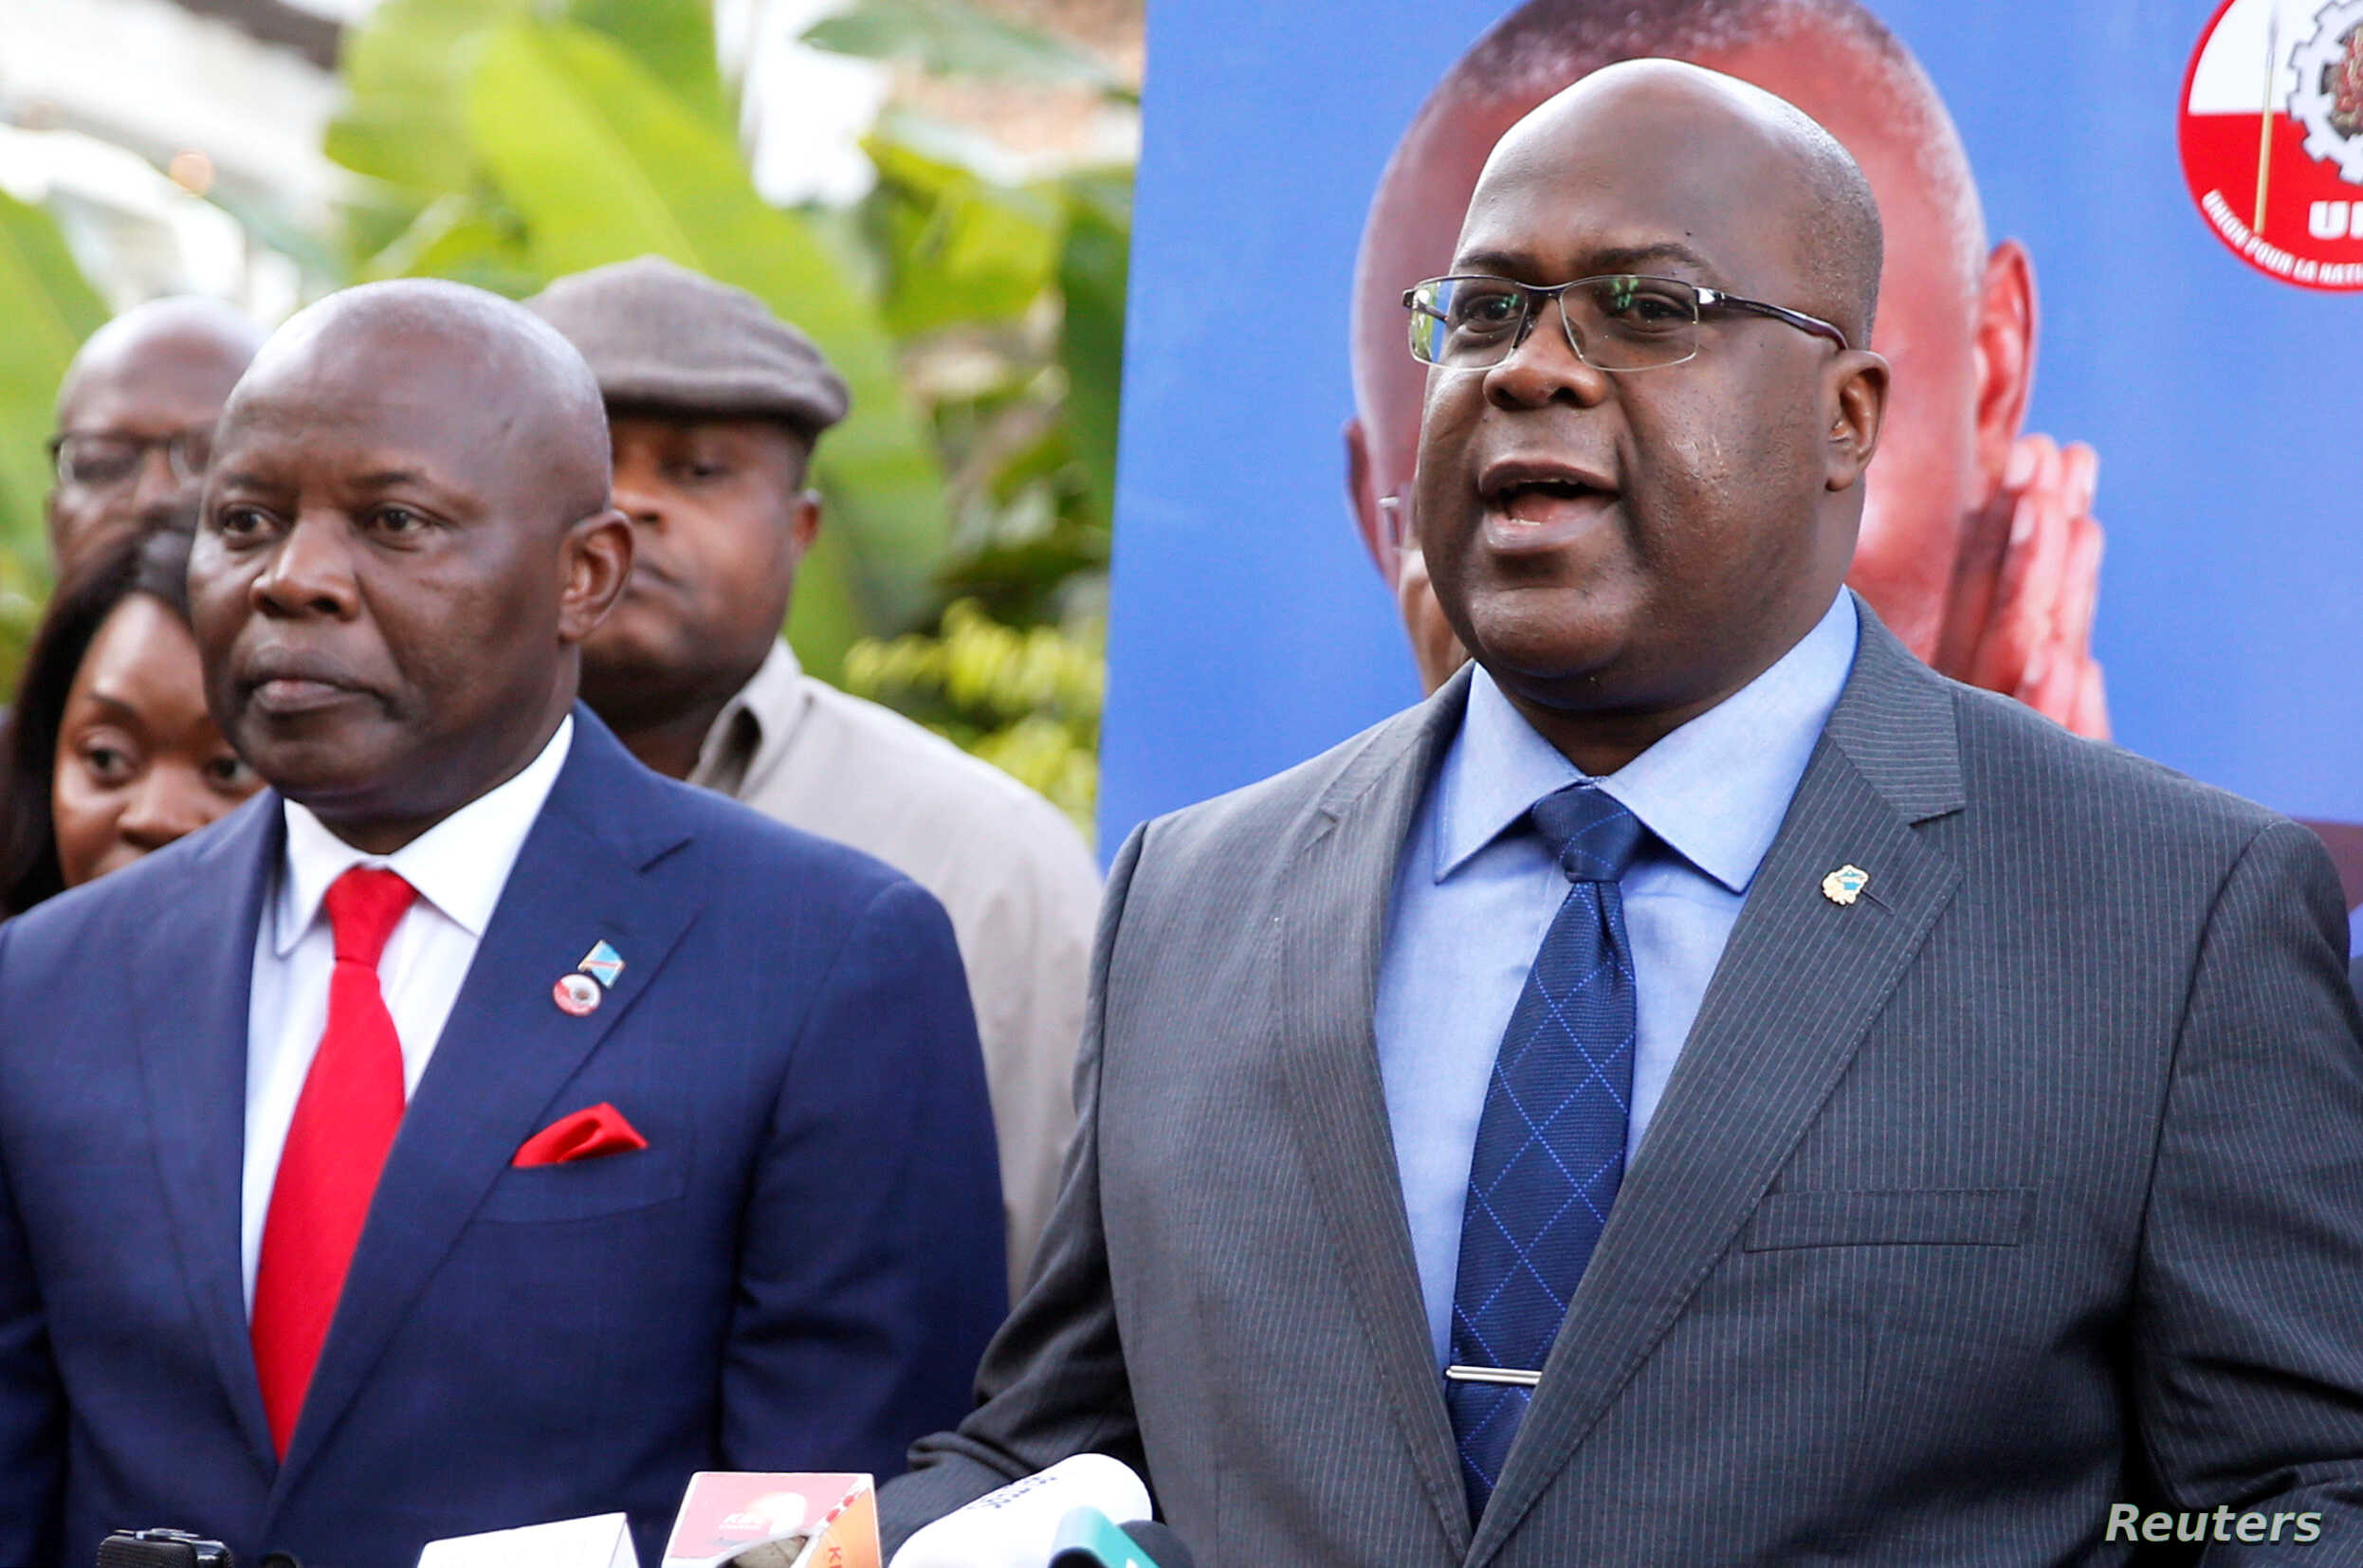 FILE - Felix Tshisekedi (R), leader of Congolese main opposition, the Union for Democracy and Social Progress (UDPS) party, flanked by Vital Kamerhe, leader of the (UNC) party, address a news conference in Nairobi, Kenya, Nov. 23, 2018.